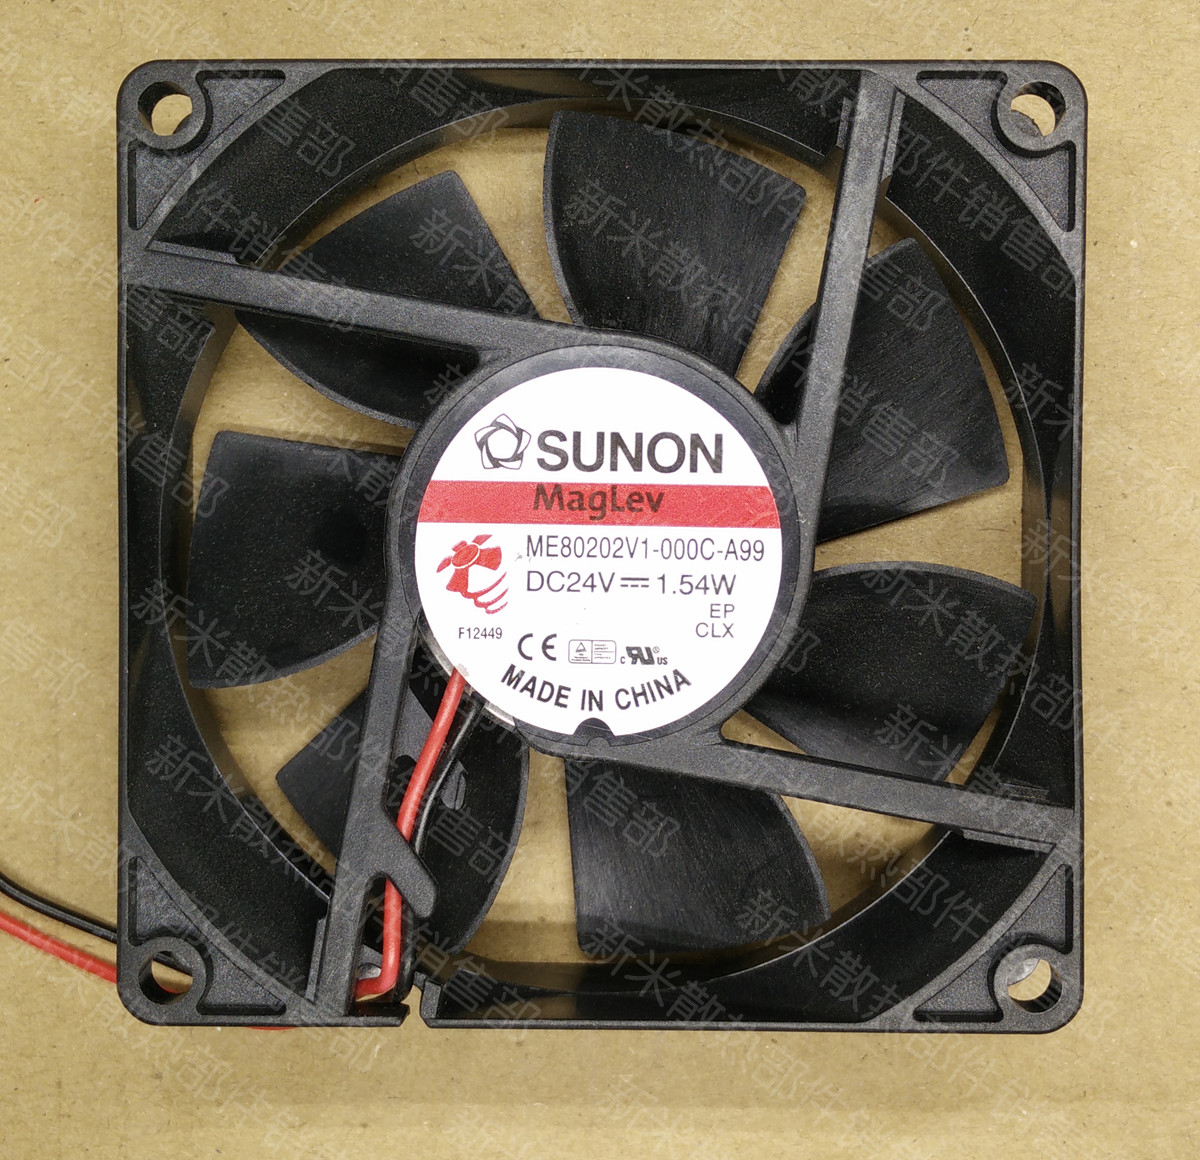 USED SUNON ME80202V1 000C A99 8020 24V 1.54W frequency cooling fan|Fans & Cooling Accessories| |  - title=